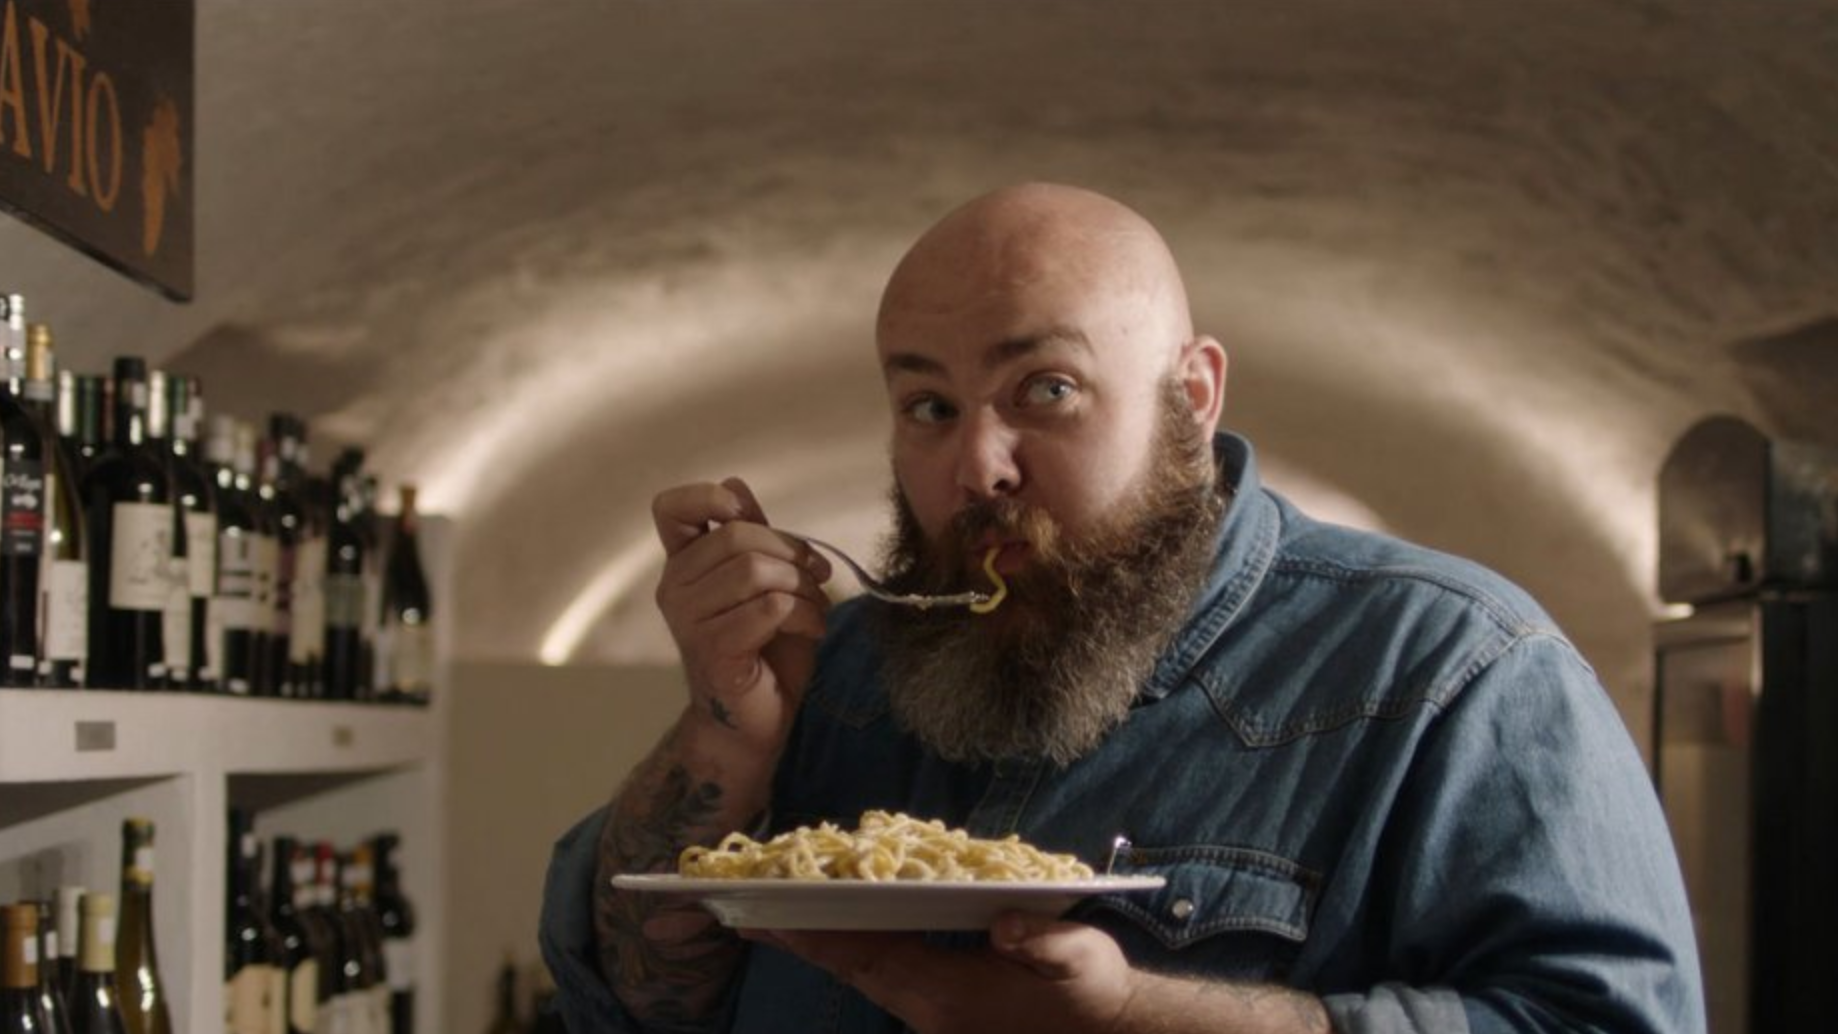 LA Chef Evan Funke to Star in 'Shape of Pasta' for New Video Platform Quibi